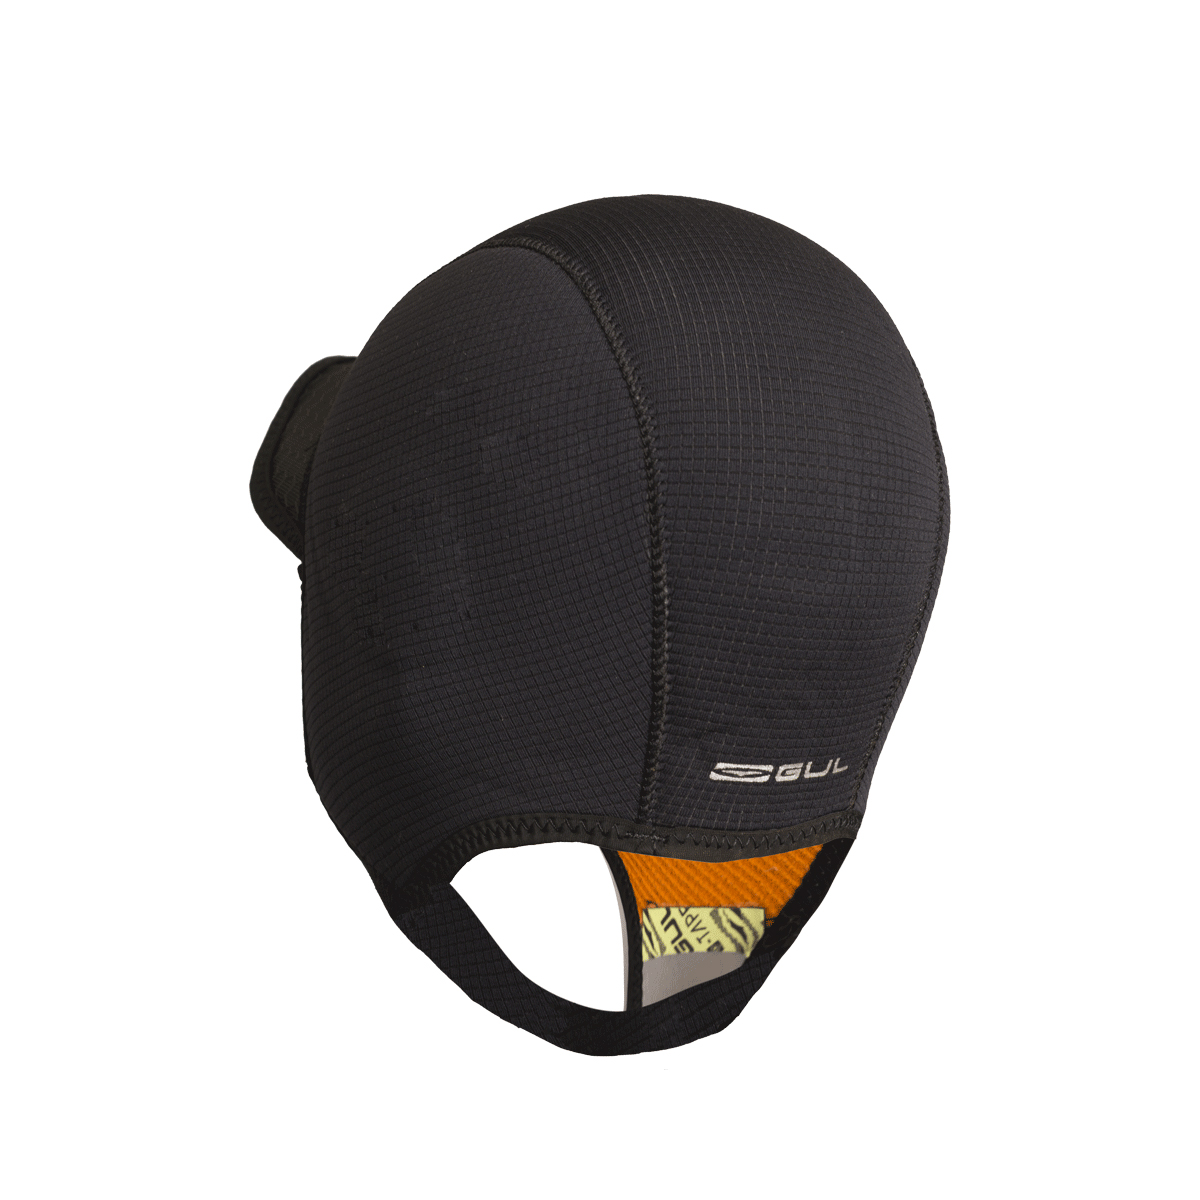 Gul Peaked 3mm Bs Surf Cap 2018 Black Coast Water Sports